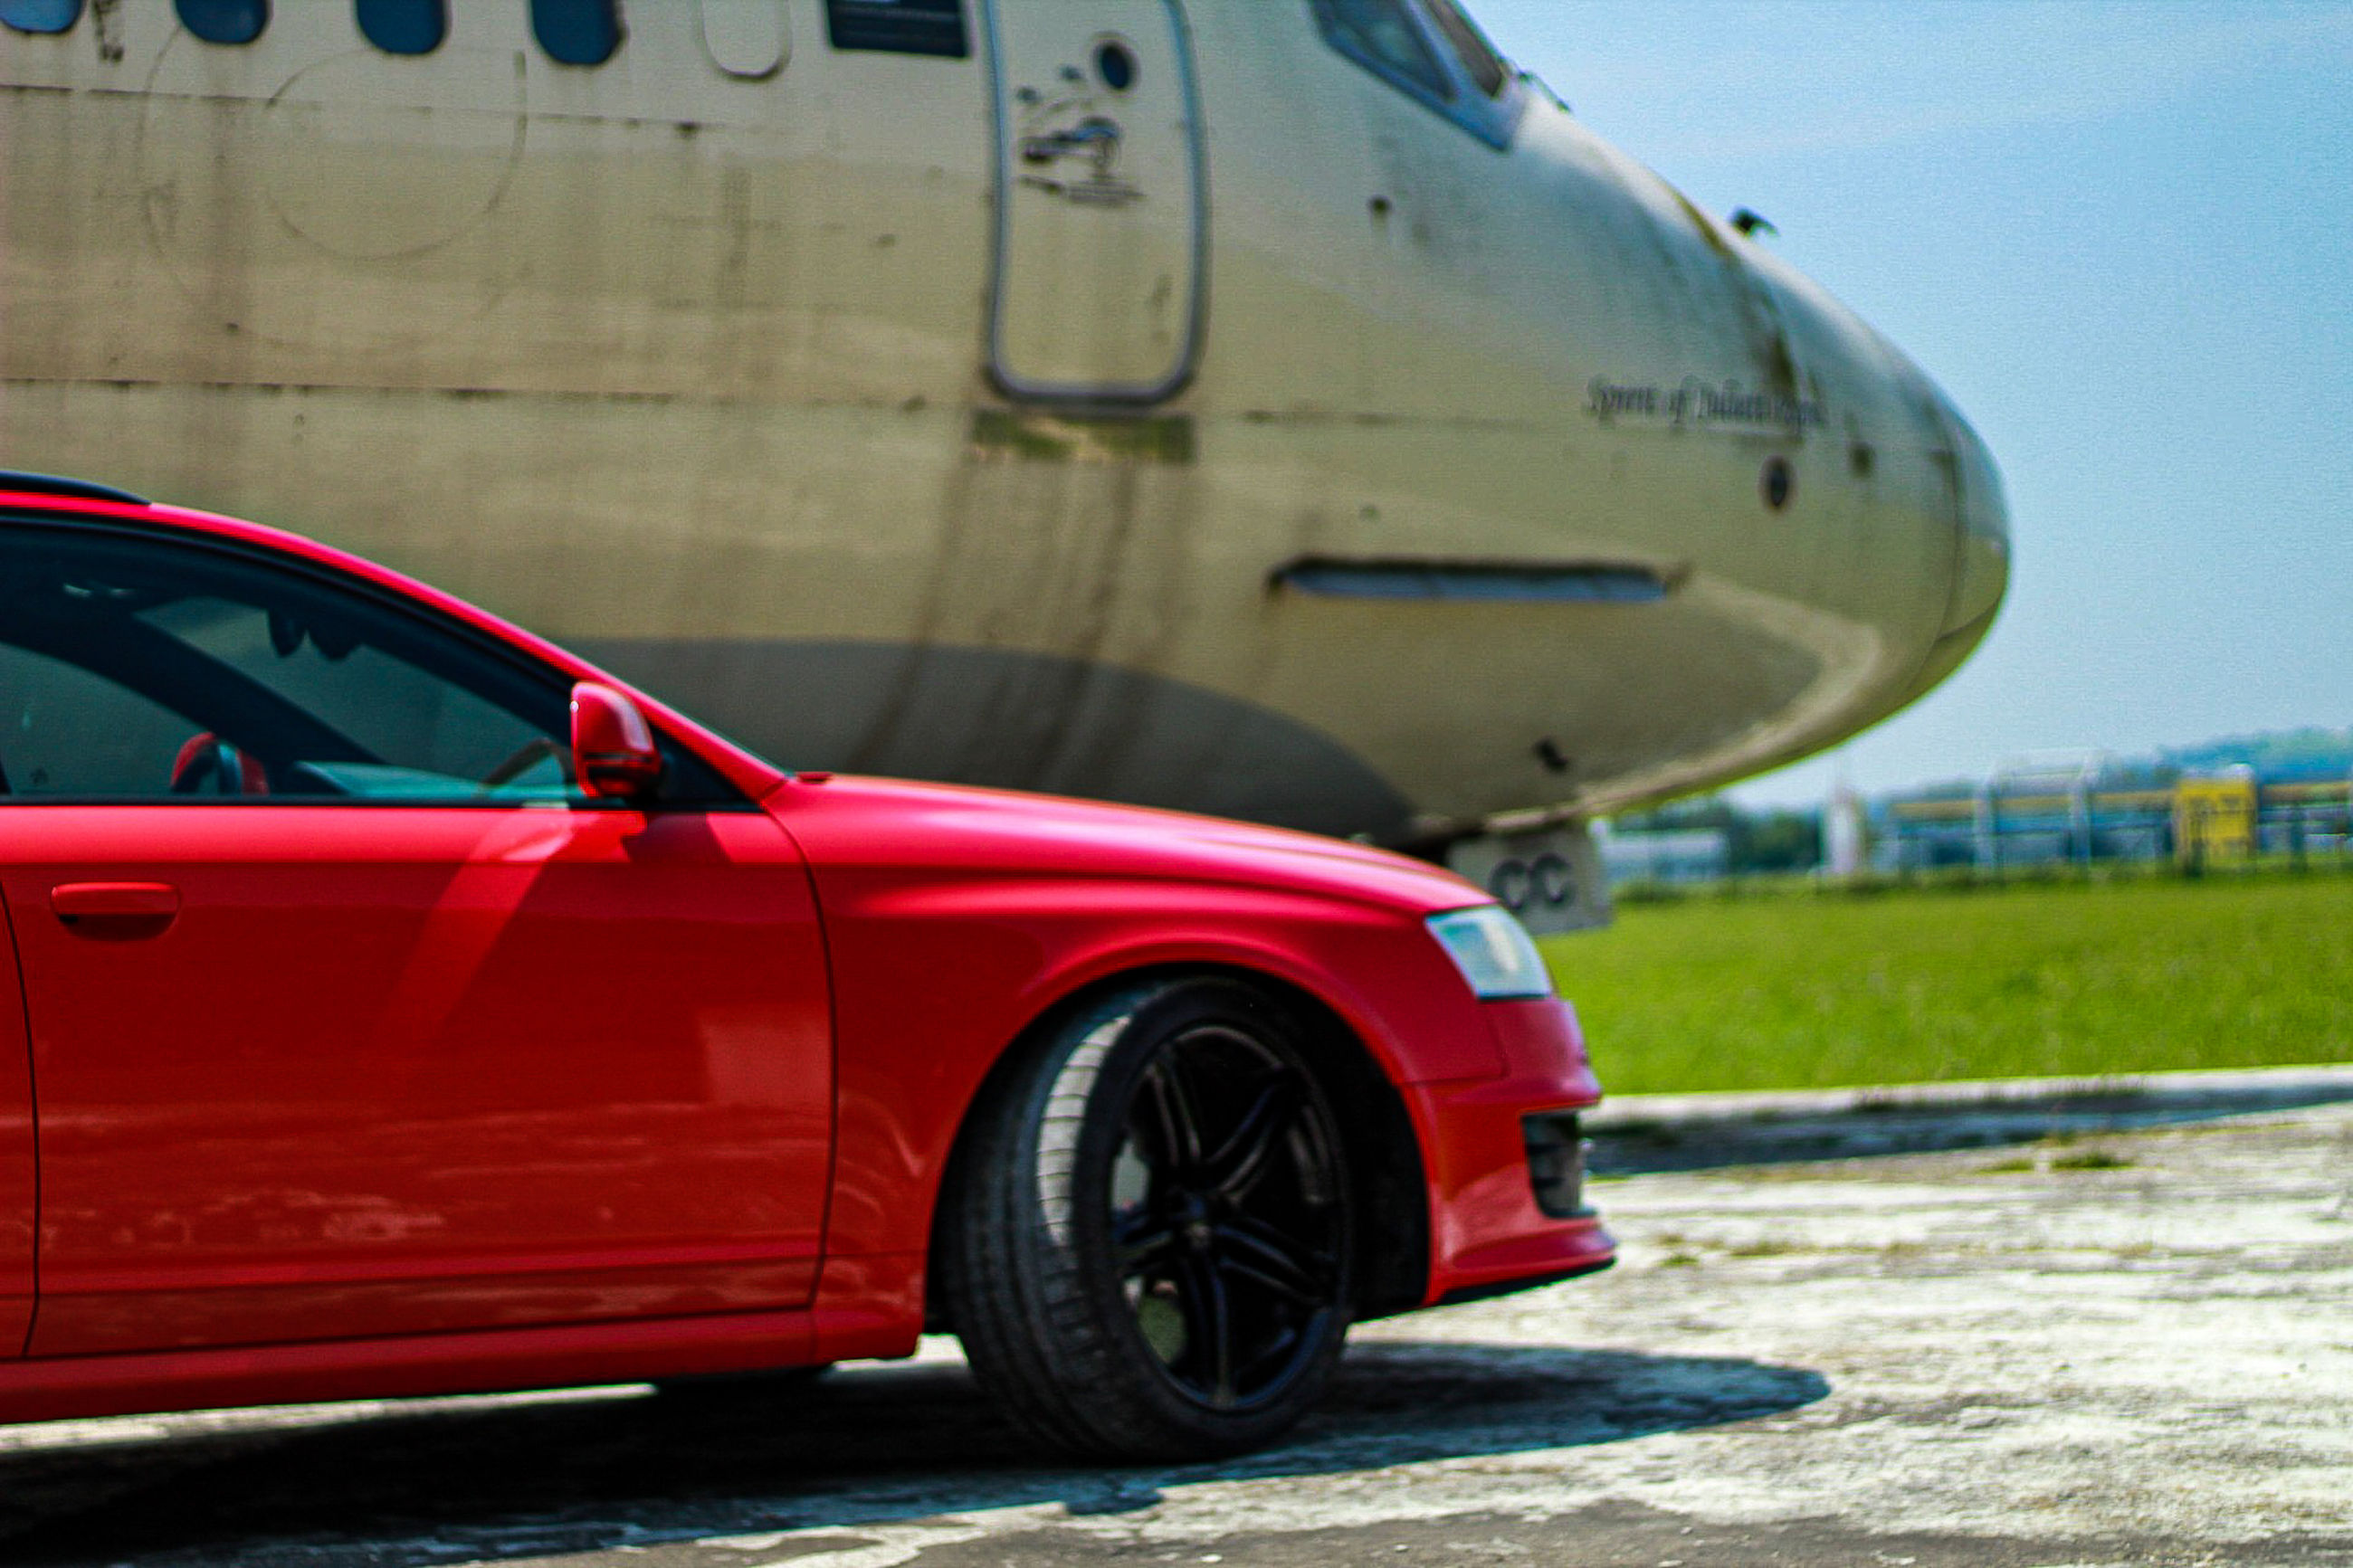 transportation, mode of transportation, motor vehicle, car, red, land vehicle, day, no people, stationary, nature, travel, outdoors, city, road, motion, on the move, airport runway, focus on foreground, sky, reflection, wheel